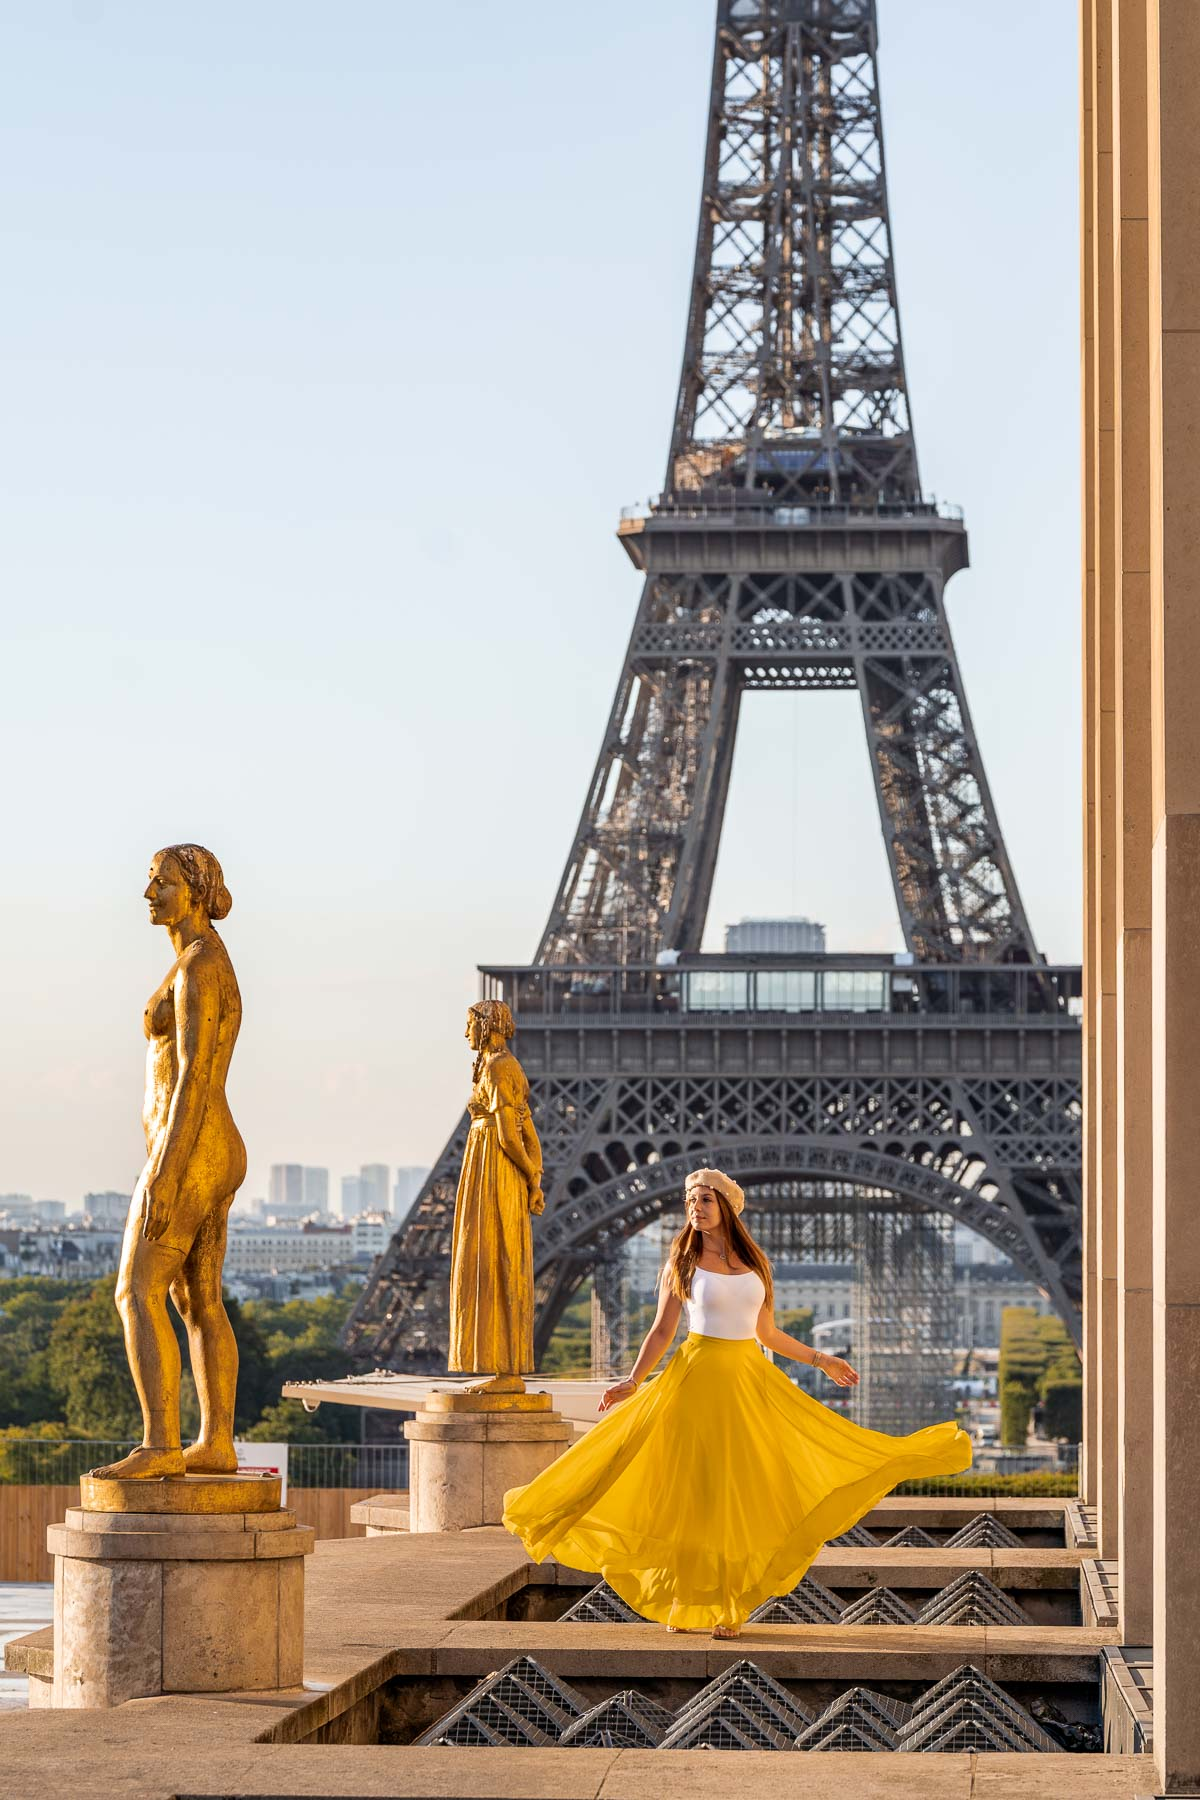 Girl in a yellow dress twirling in front of the Eiffel Tower at Trocadero, one of the most instagrammable places in Paris